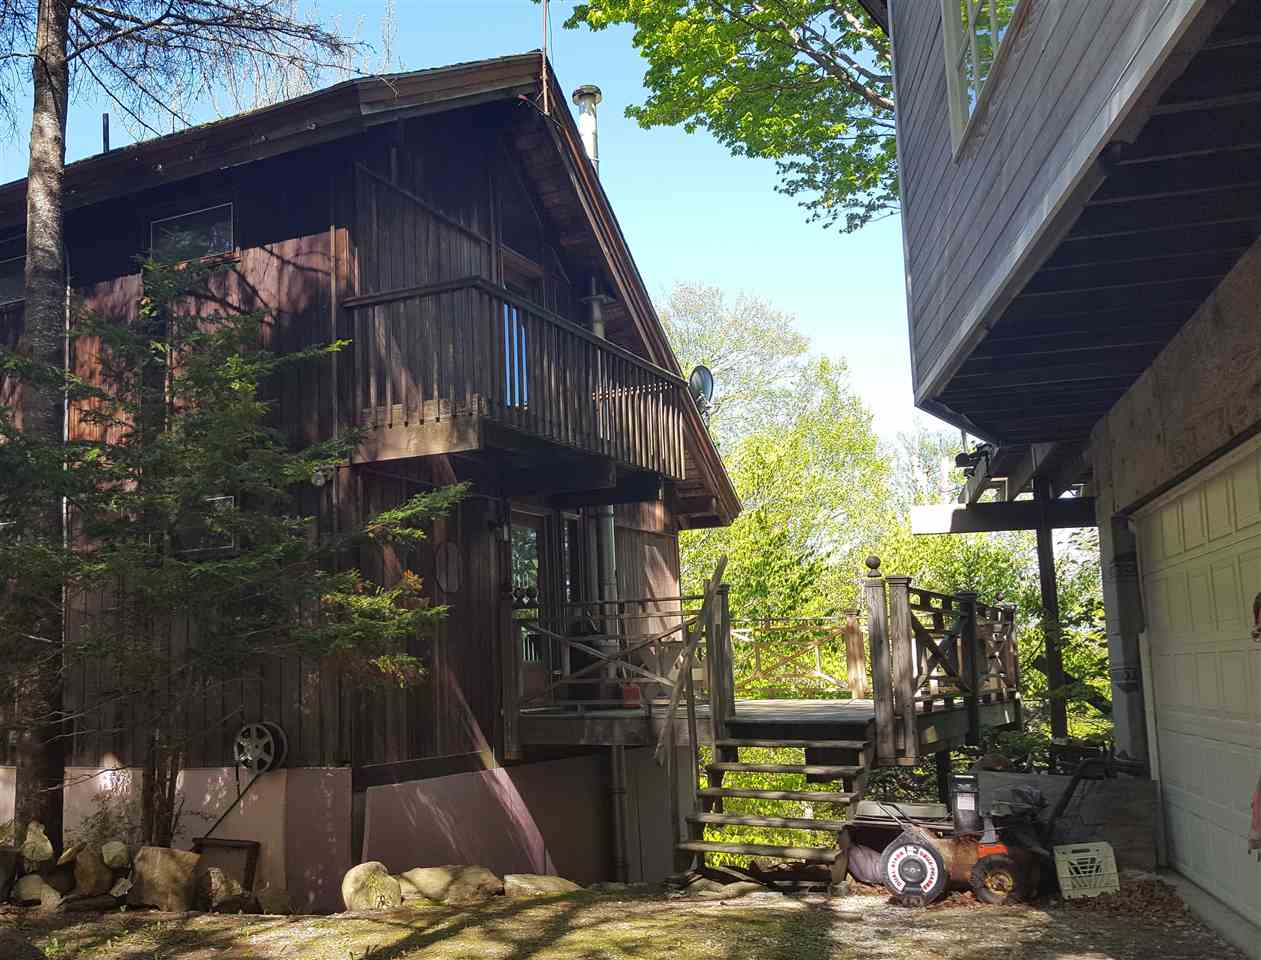 Original Owner. Property consists of a 2-story...